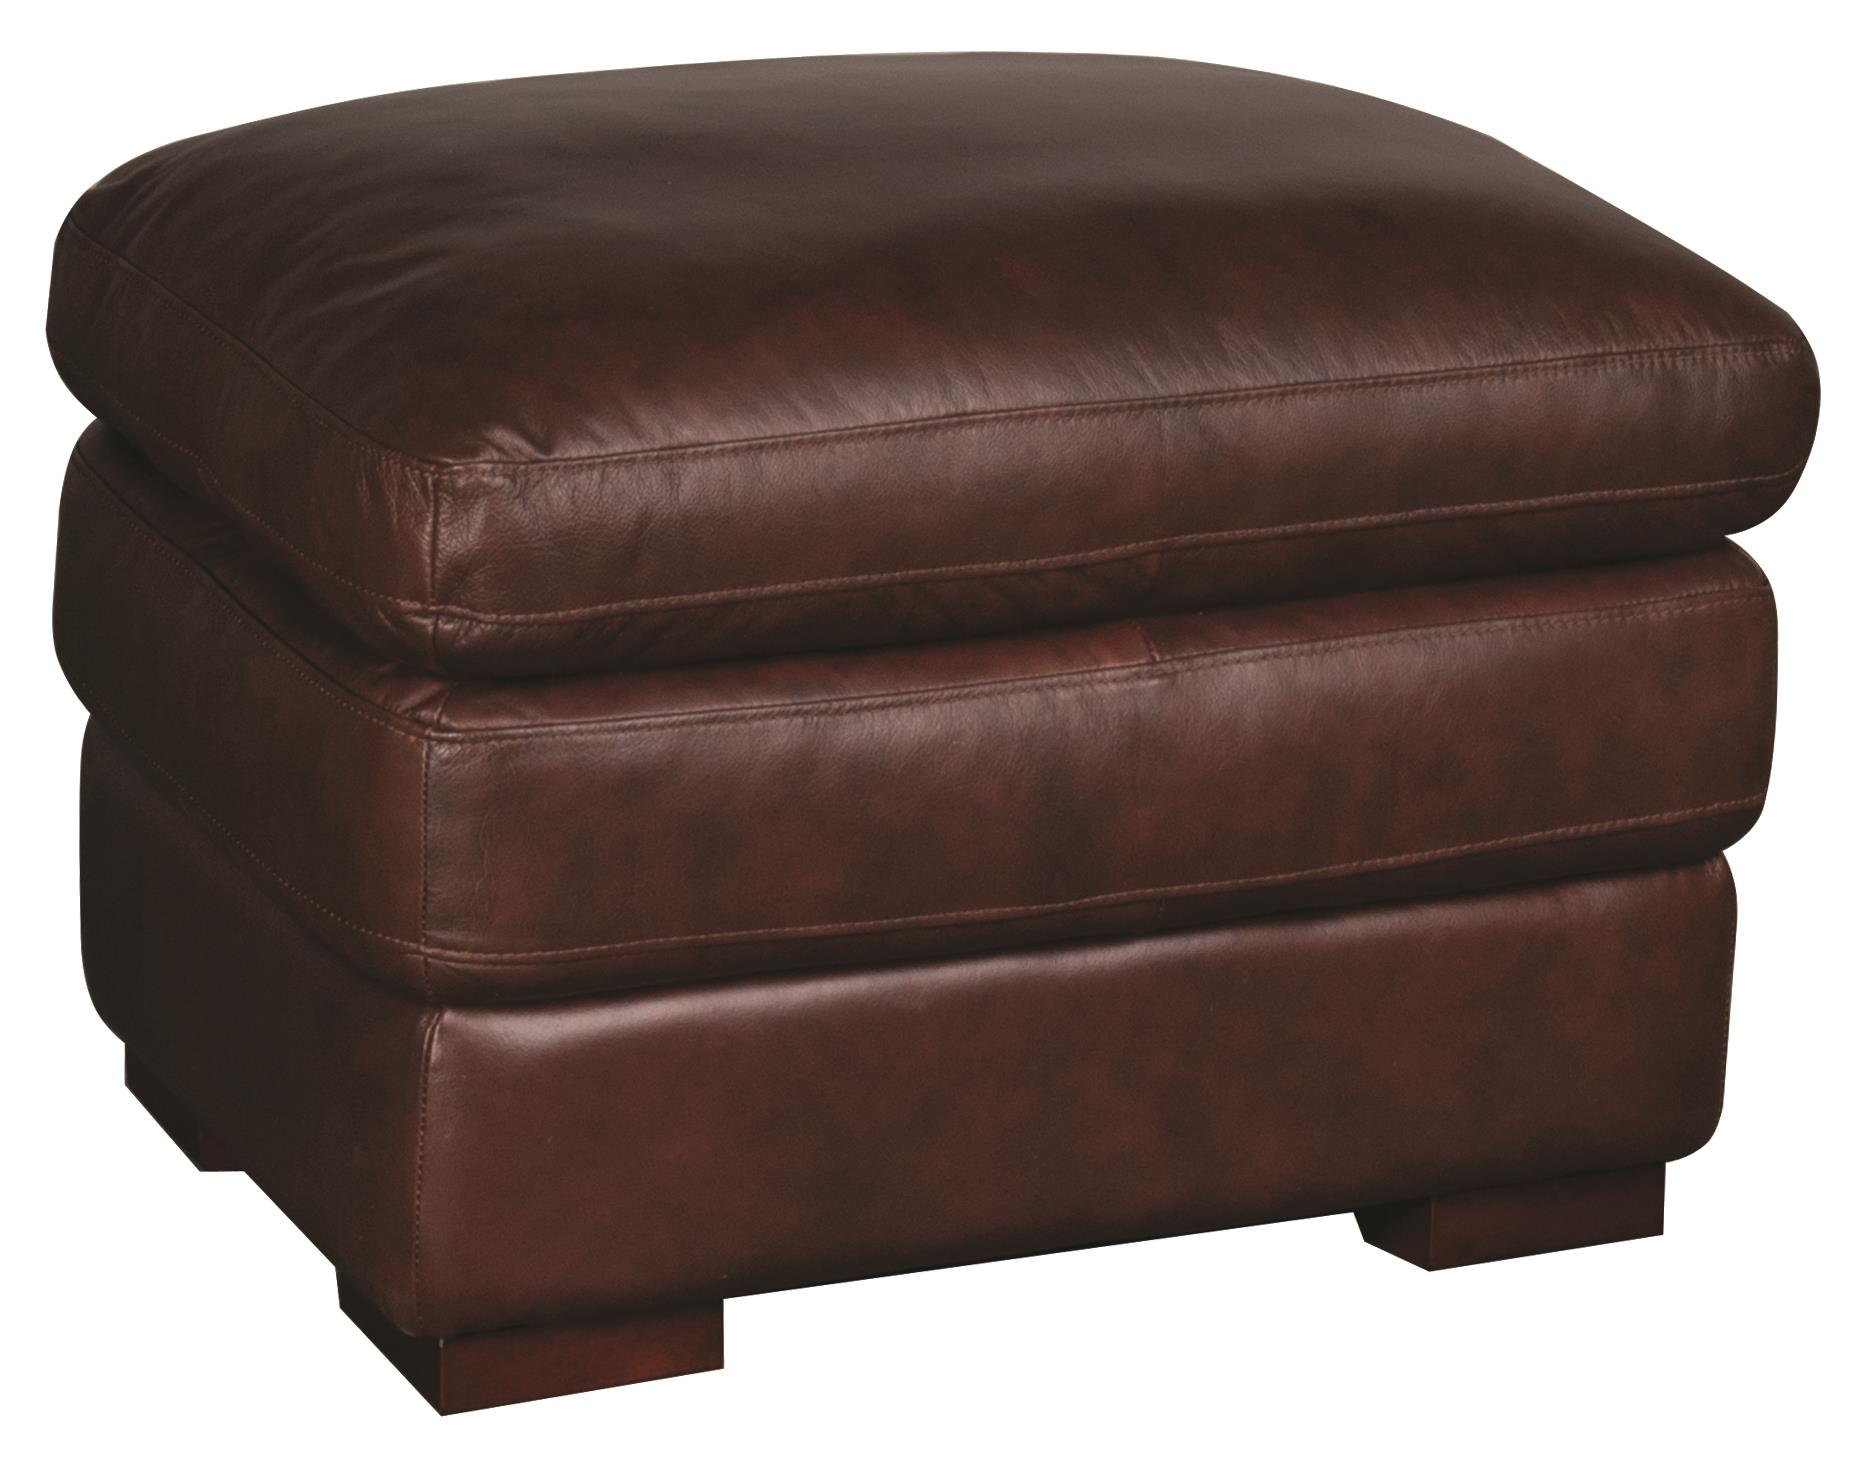 Morris Home Furnishings Austin Austin 100% Leather Ottoman - Item Number: 114826259